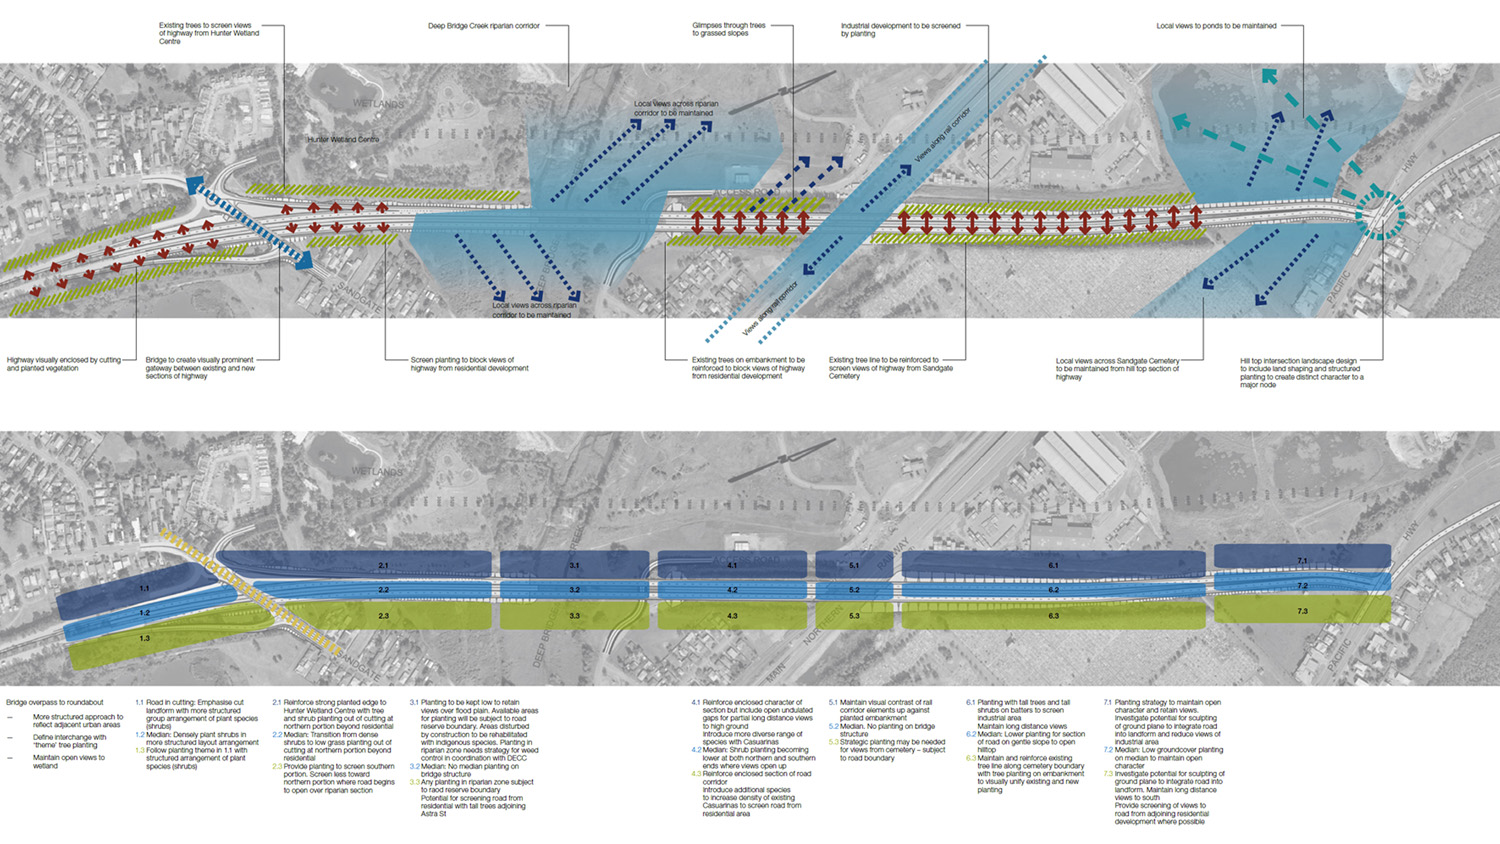 landscape-strategy-plan-and-landscape-structure-plan.jpg